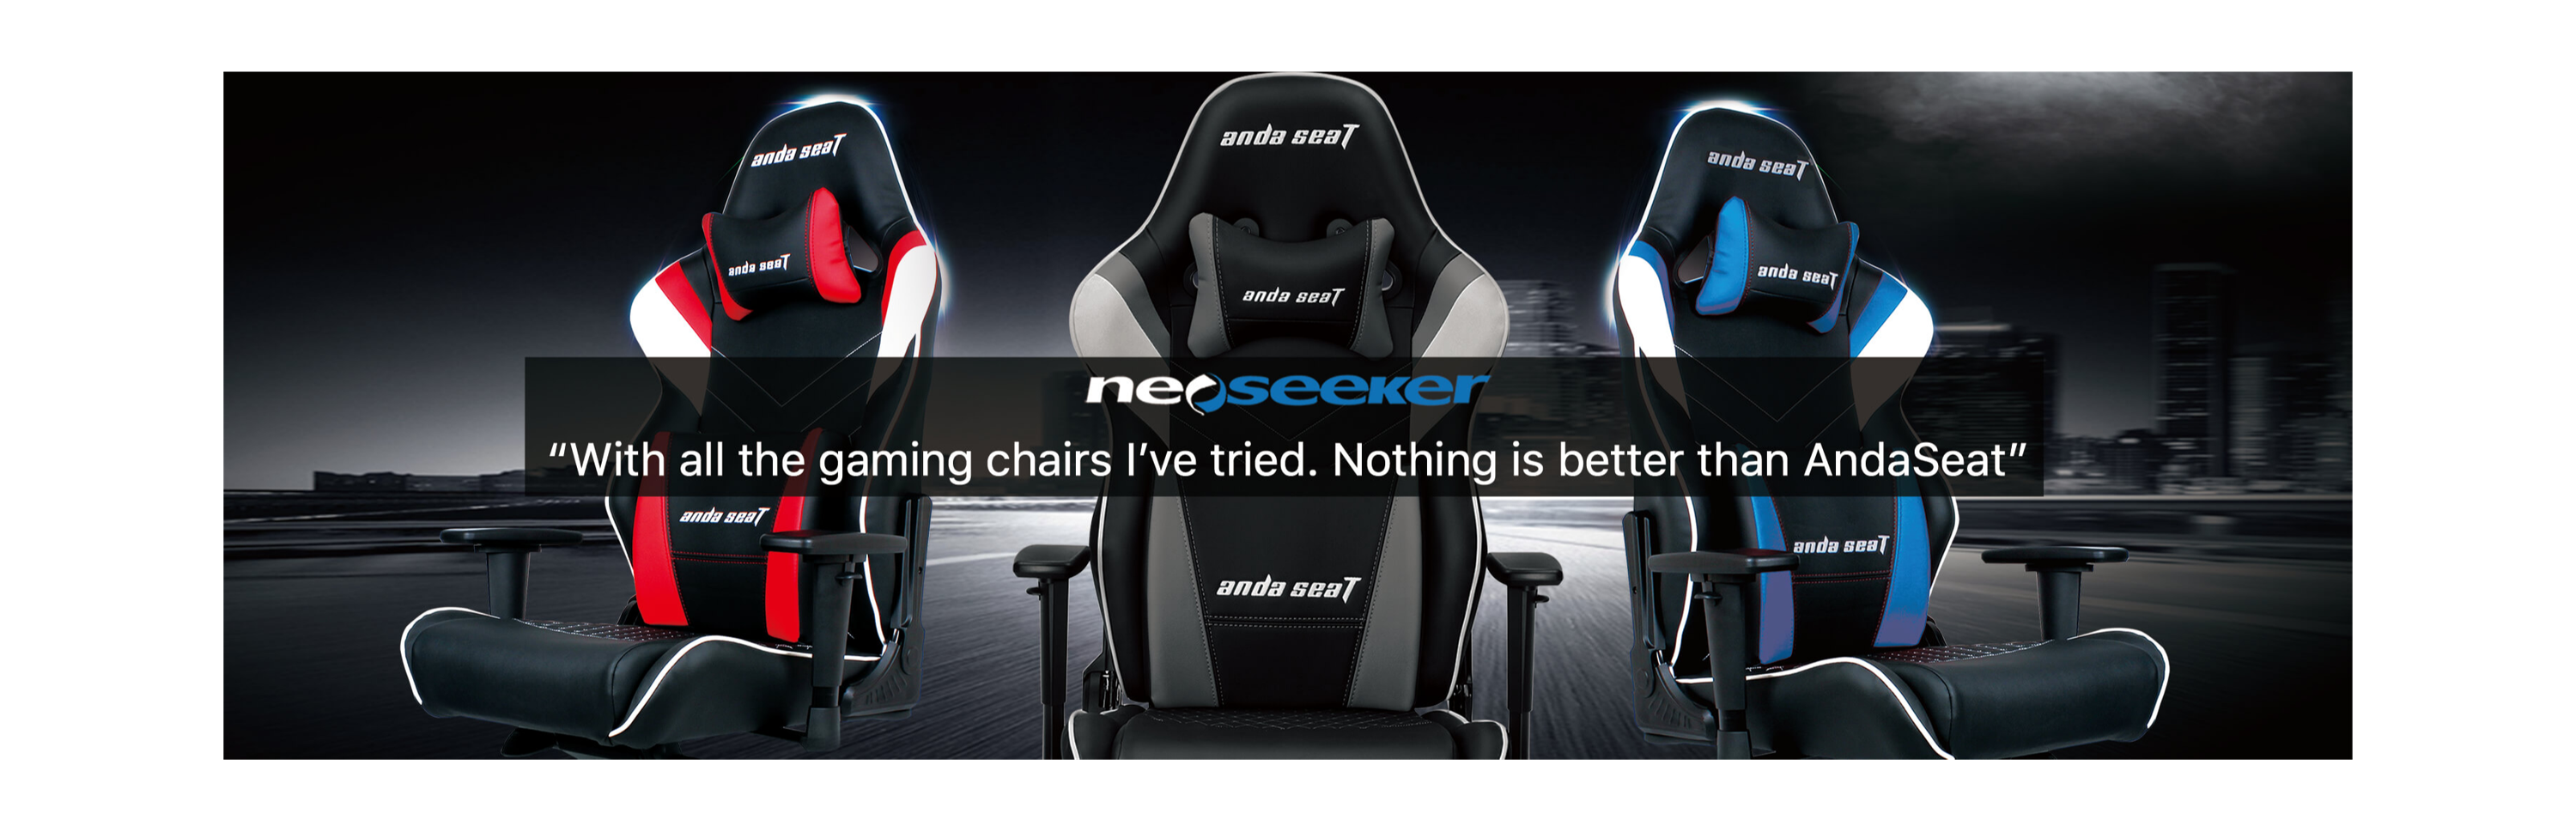 Gaming chair - Neoseeker - Editor's Choice